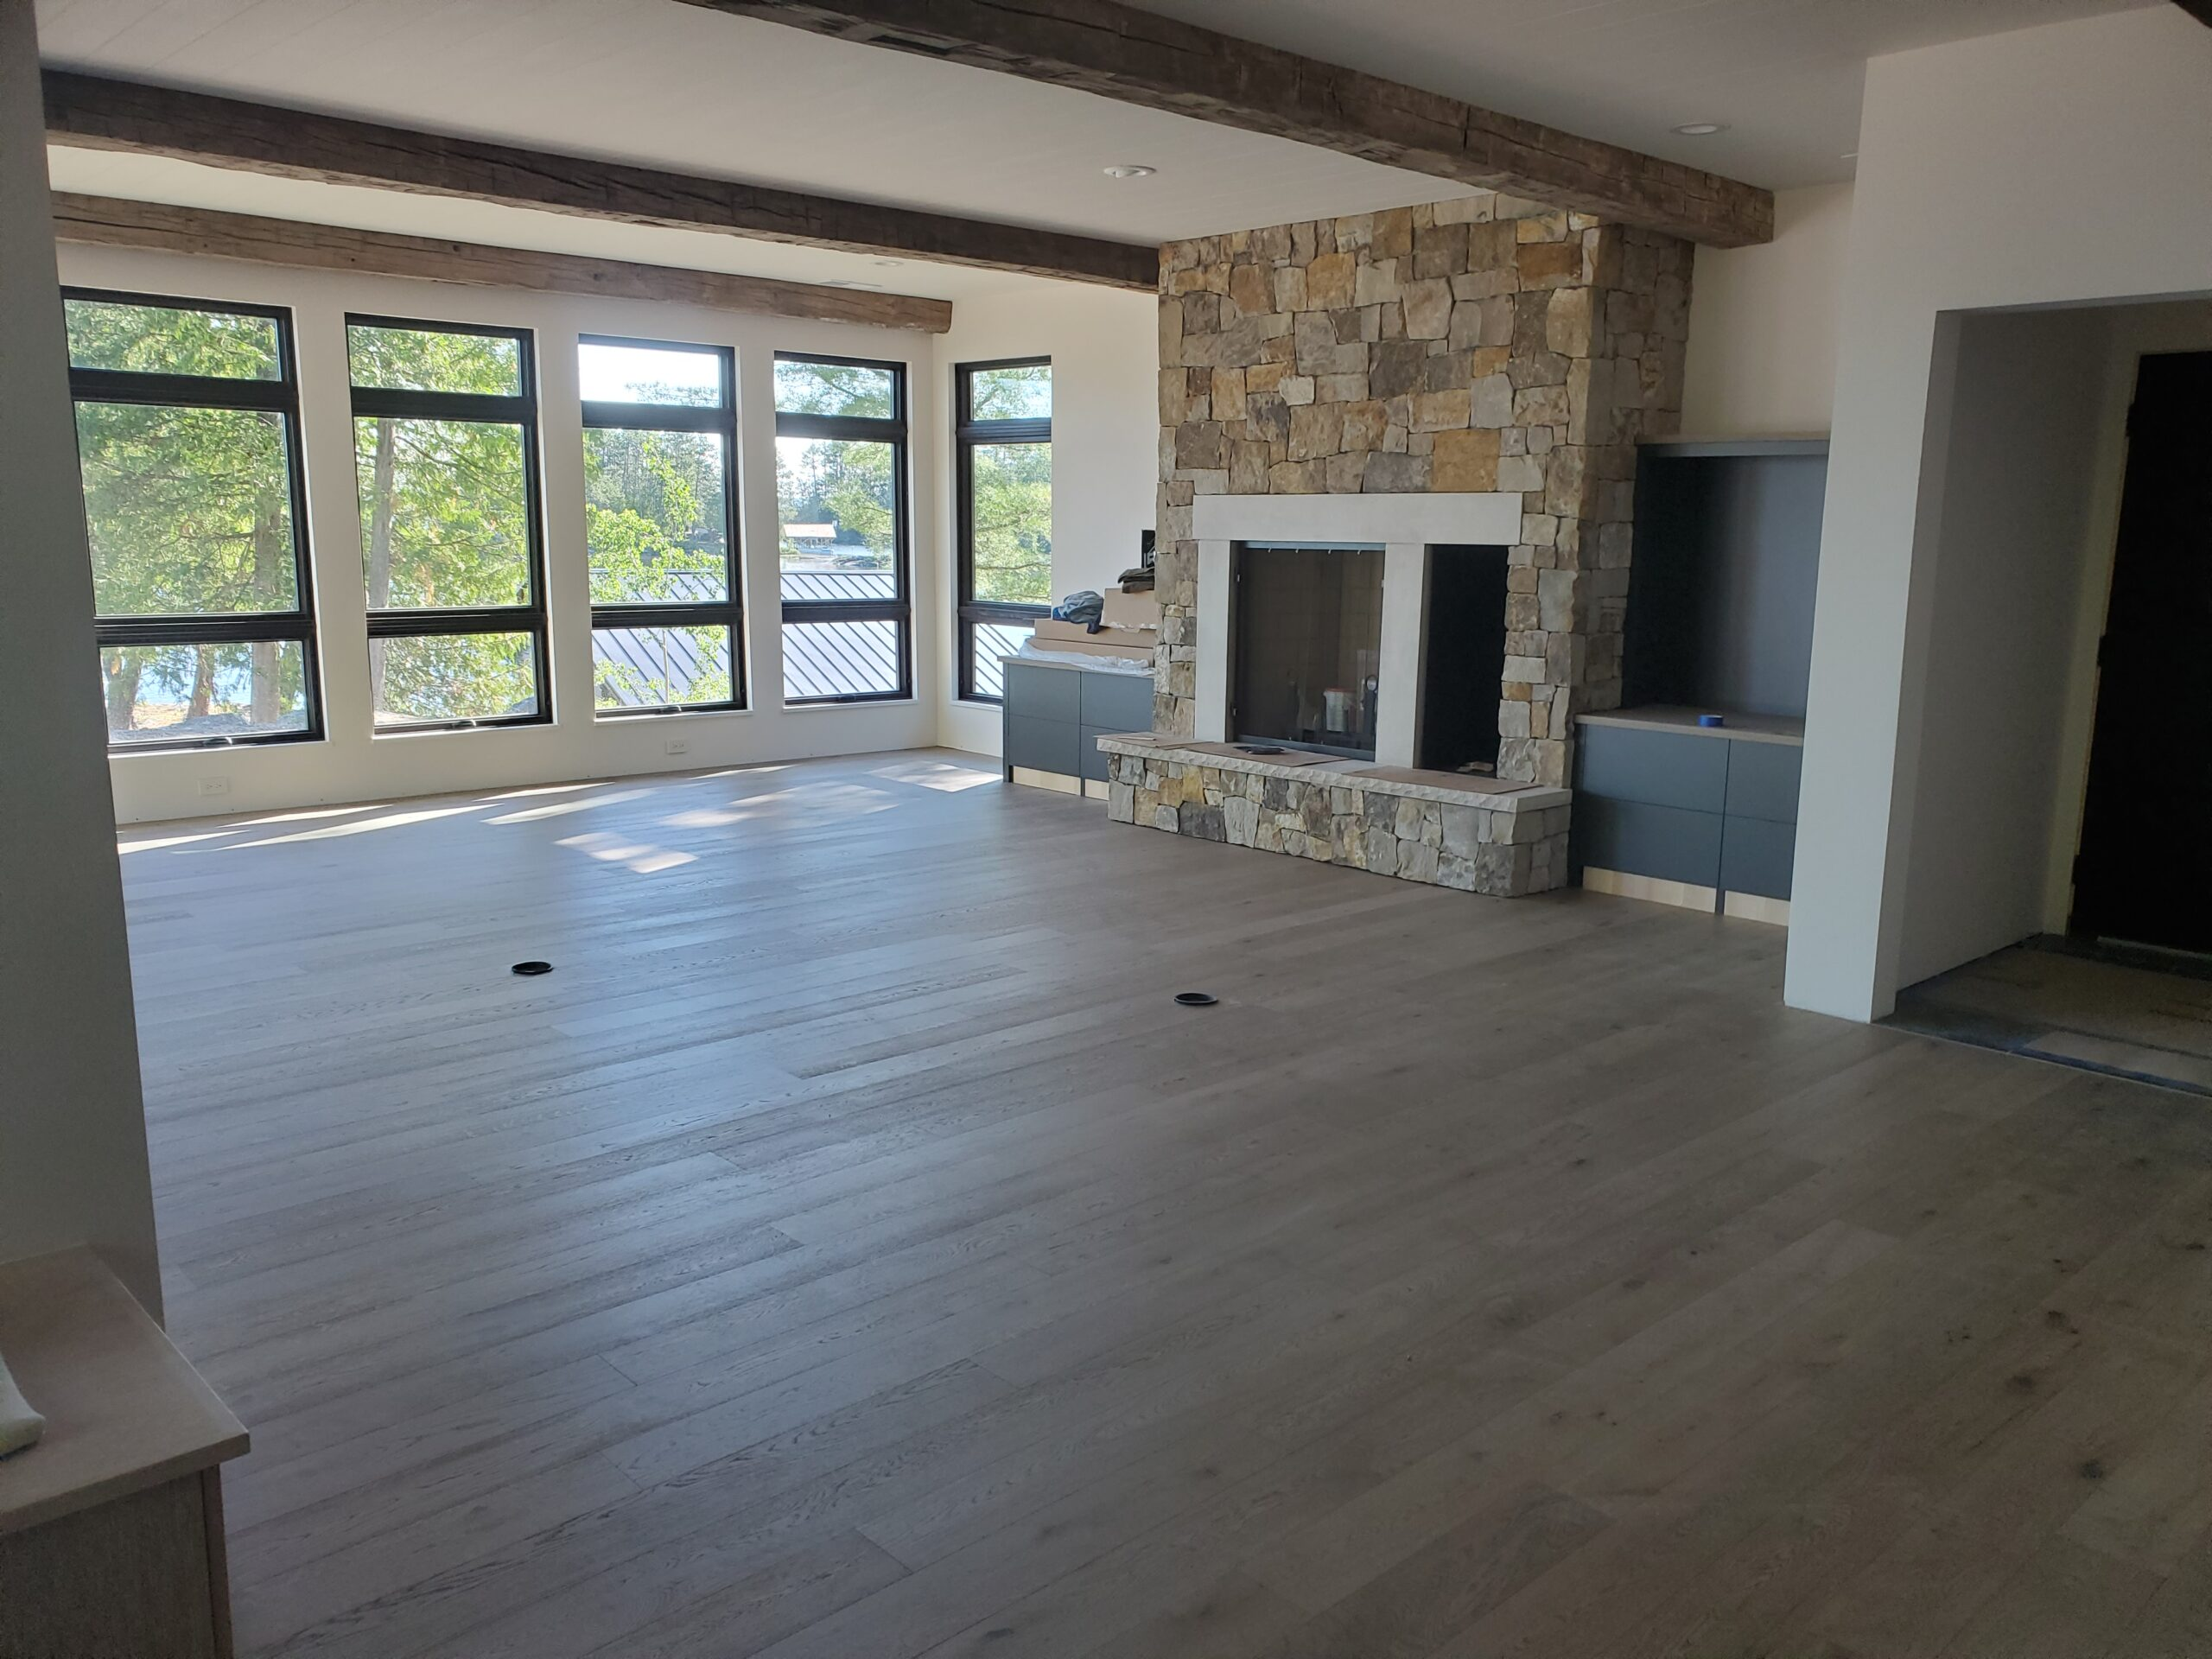 Great room flooring done